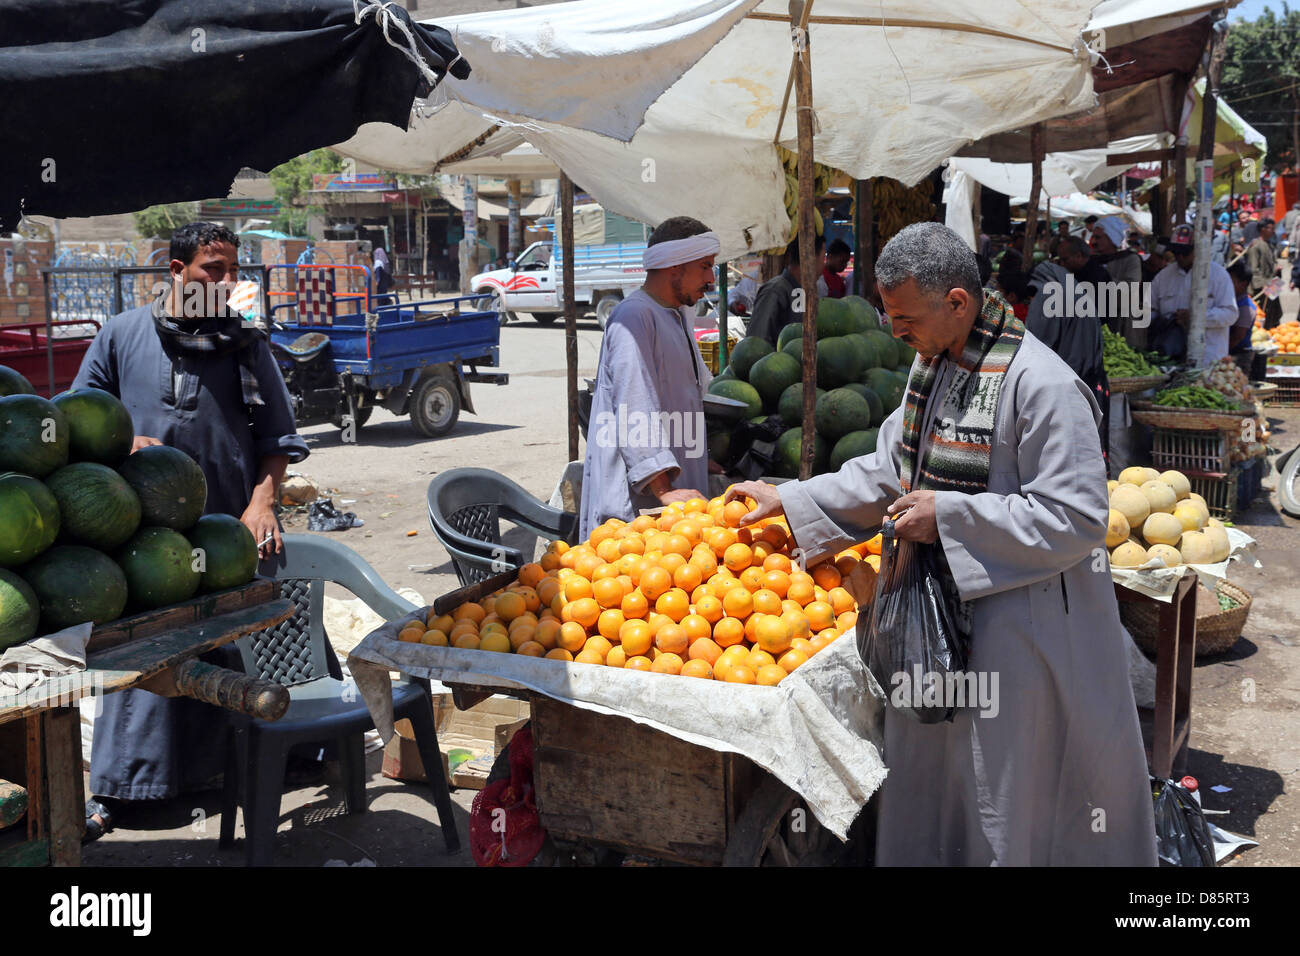 Market stall with fruits and vegetables in Al Ghanayem, Upper Egypt - Stock Image